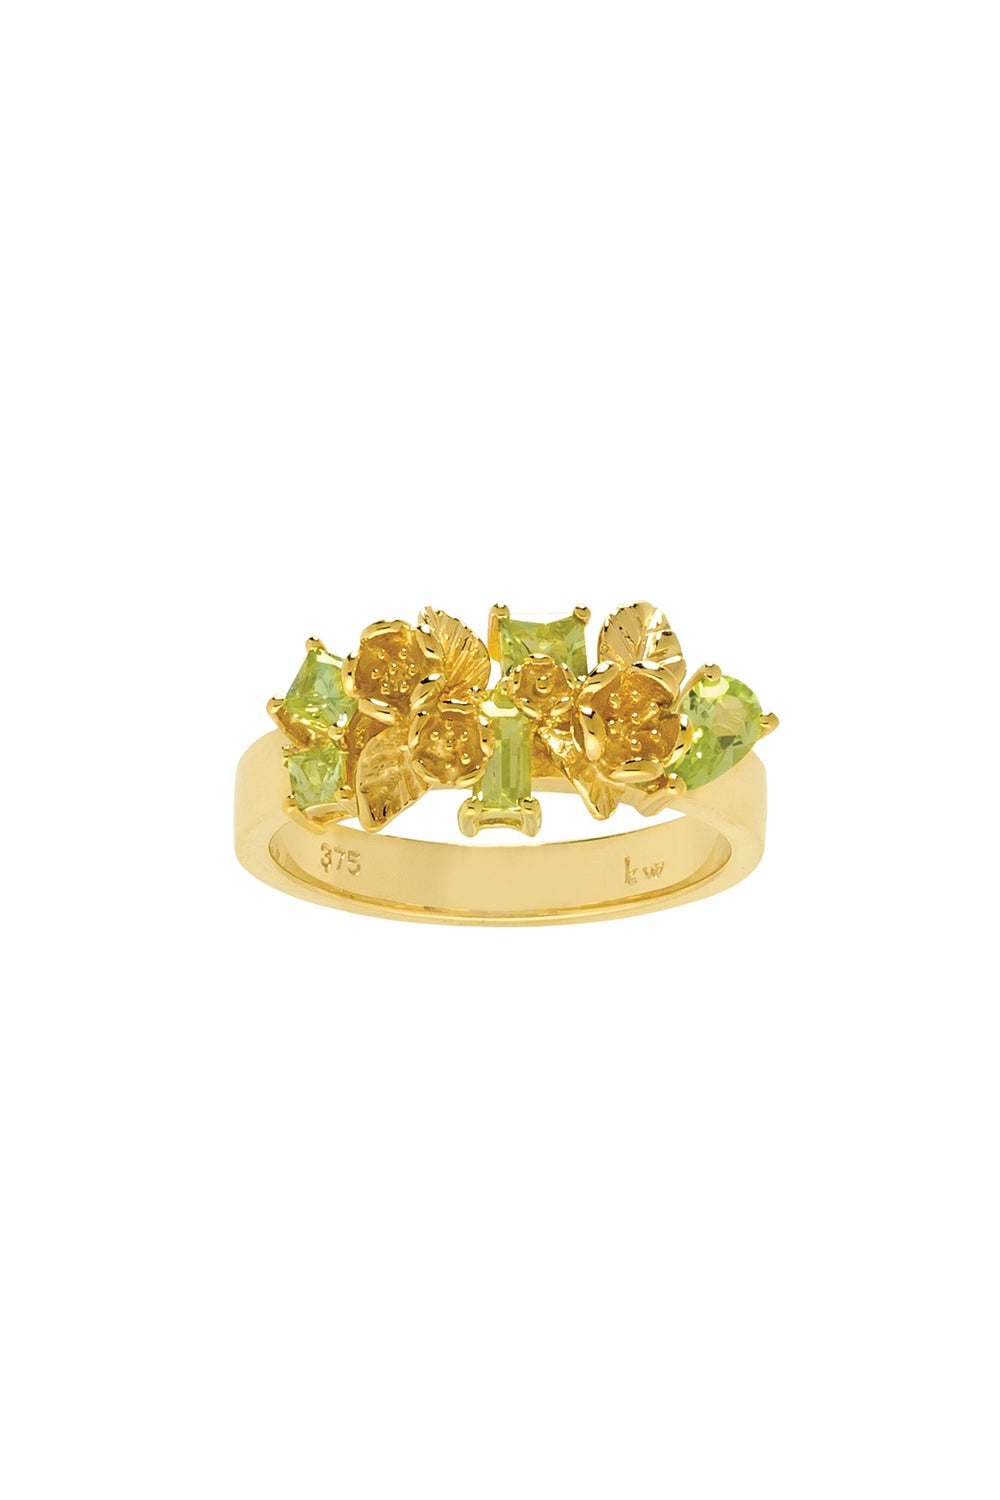 Rock Garden Flowers Ring Gold & Peridot